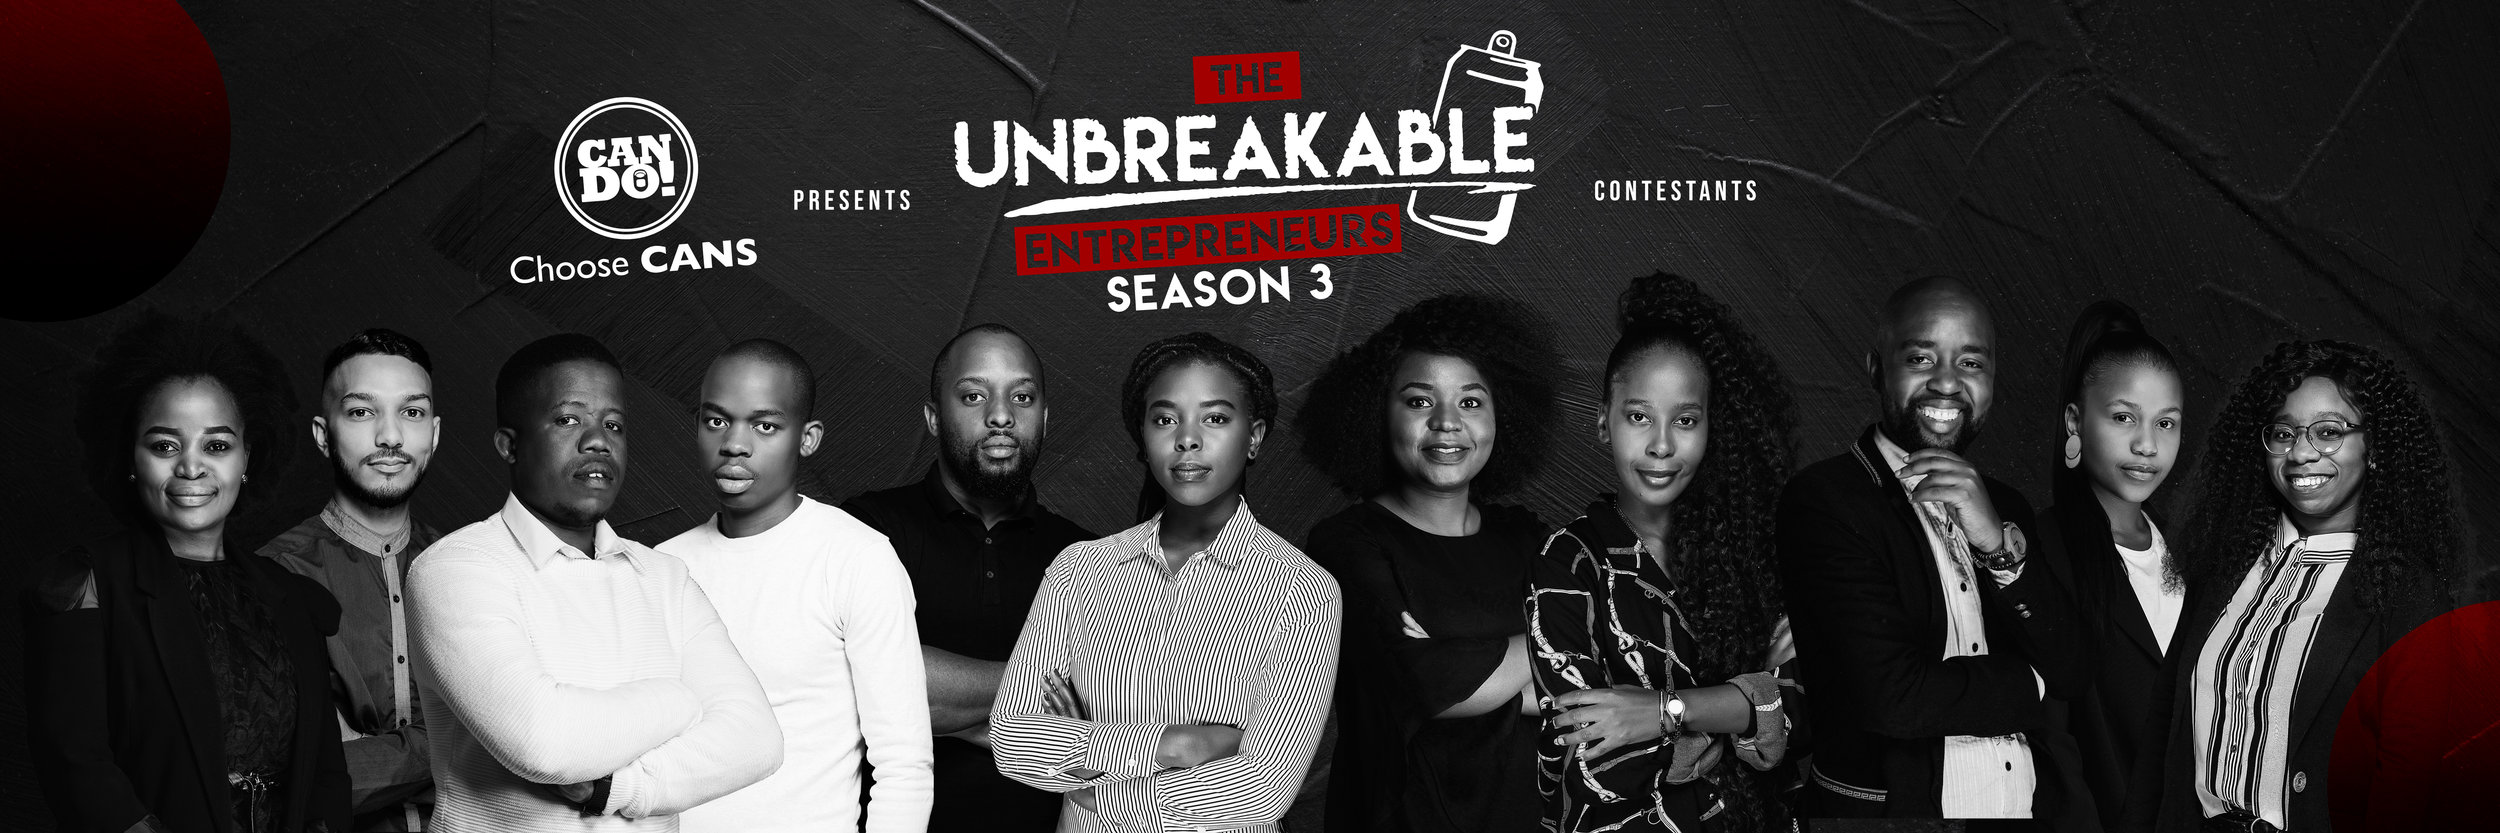 CAN DO! Unbreakable S3: Top 11 Finalists